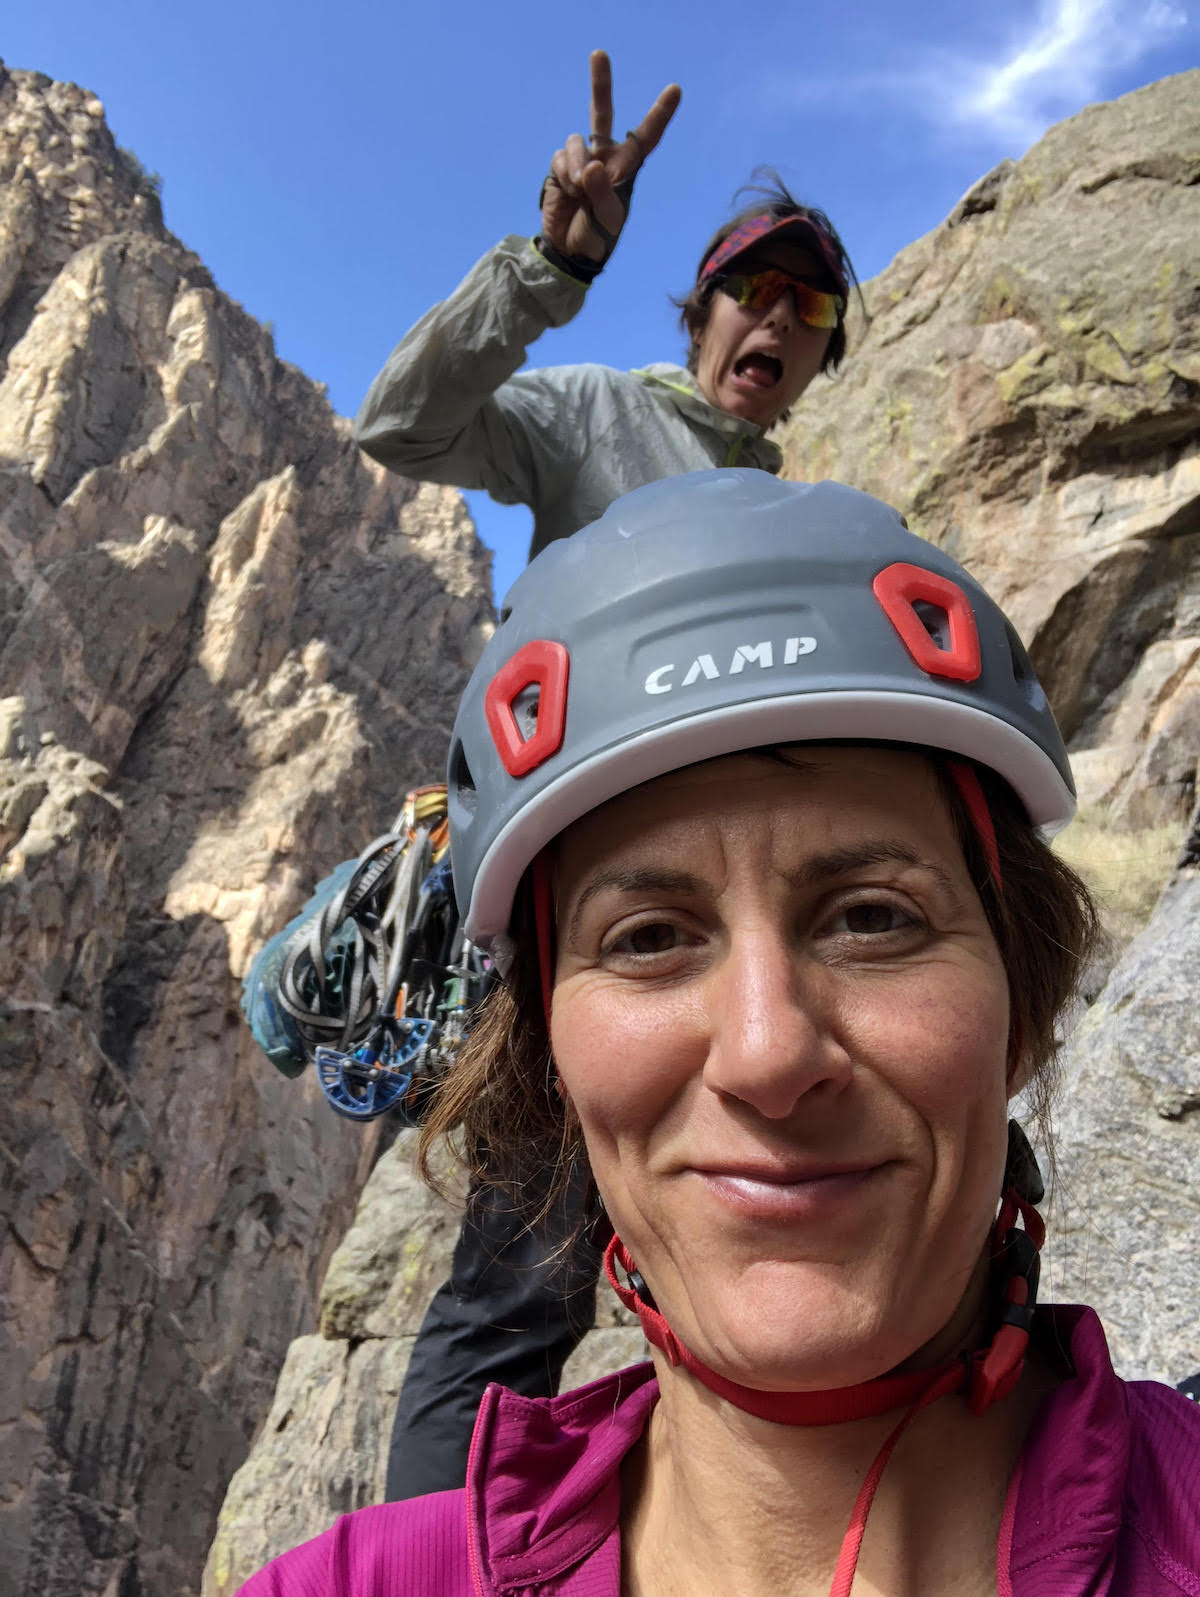 Mary Harlan (foreground) and Sorkin in the Black Canyon. [Photo] Mary Harlan